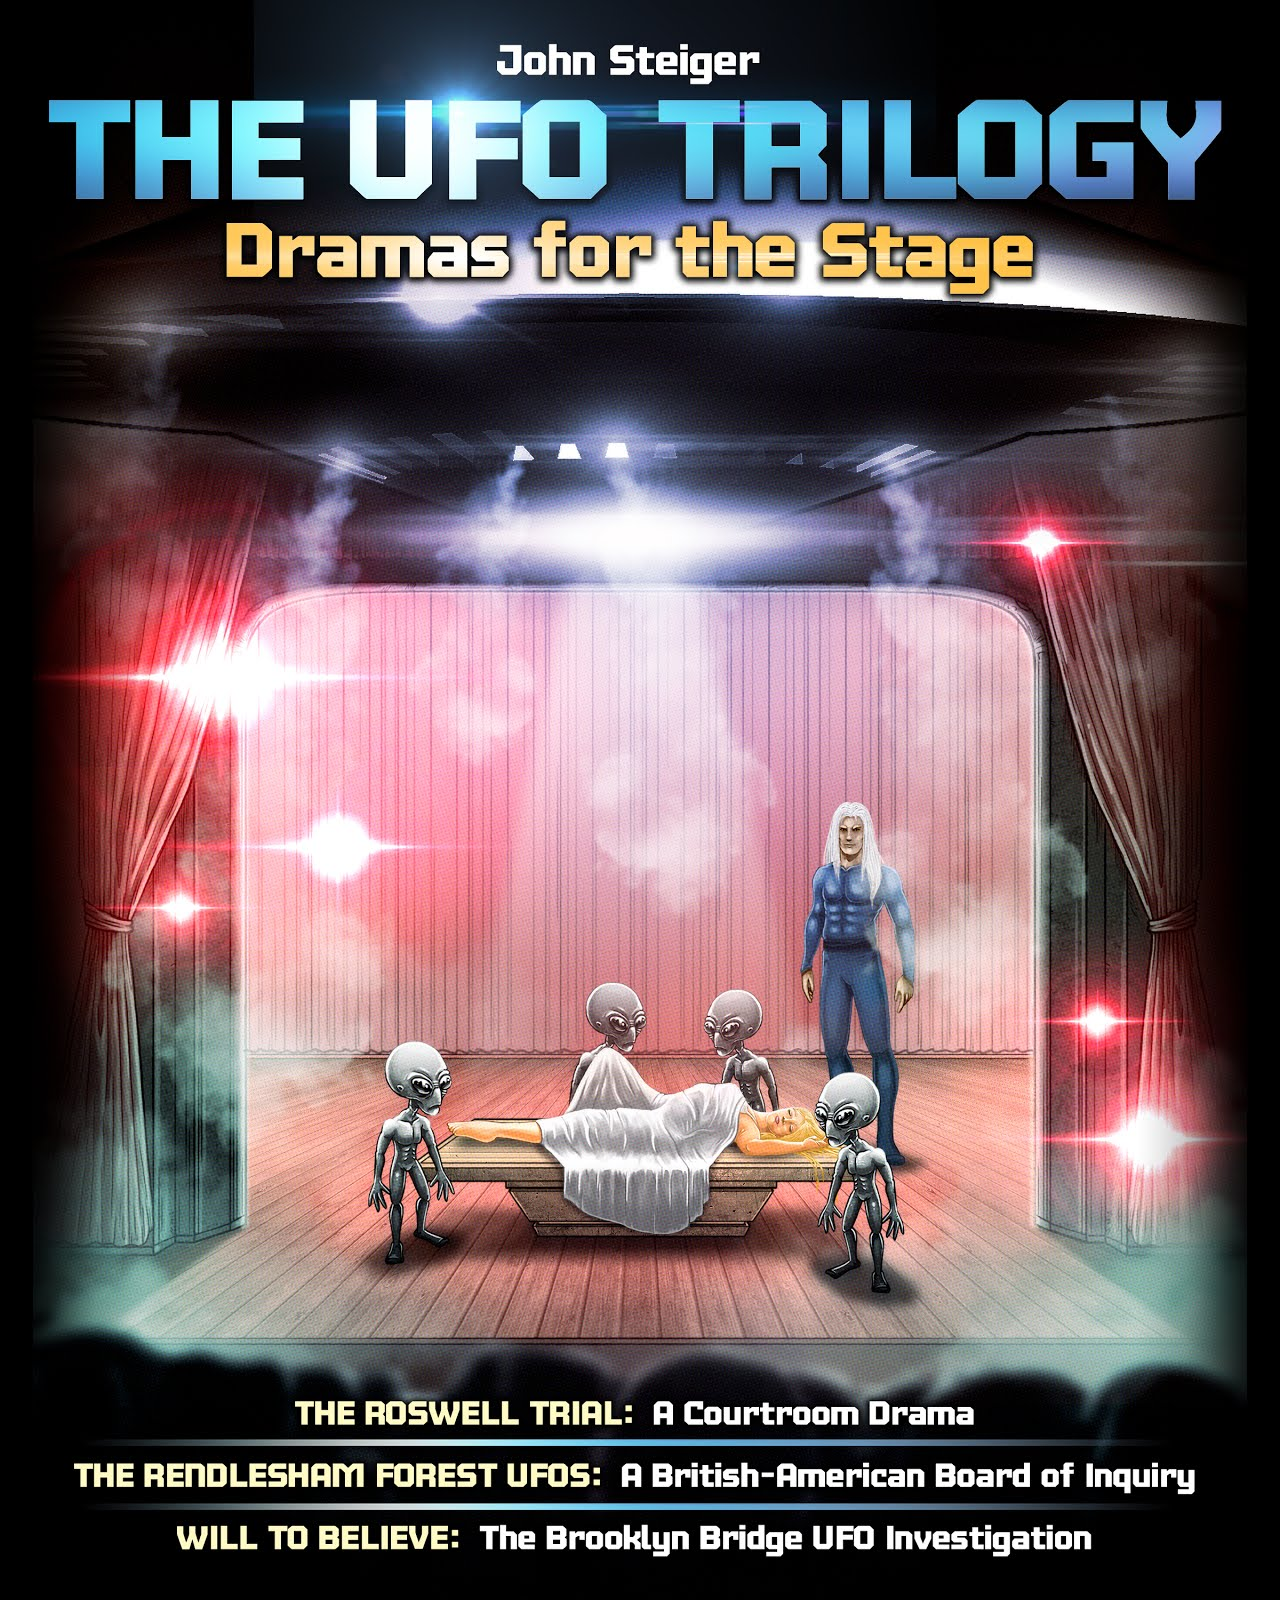 THE UFO TRILOGY - Dramas For The Stage